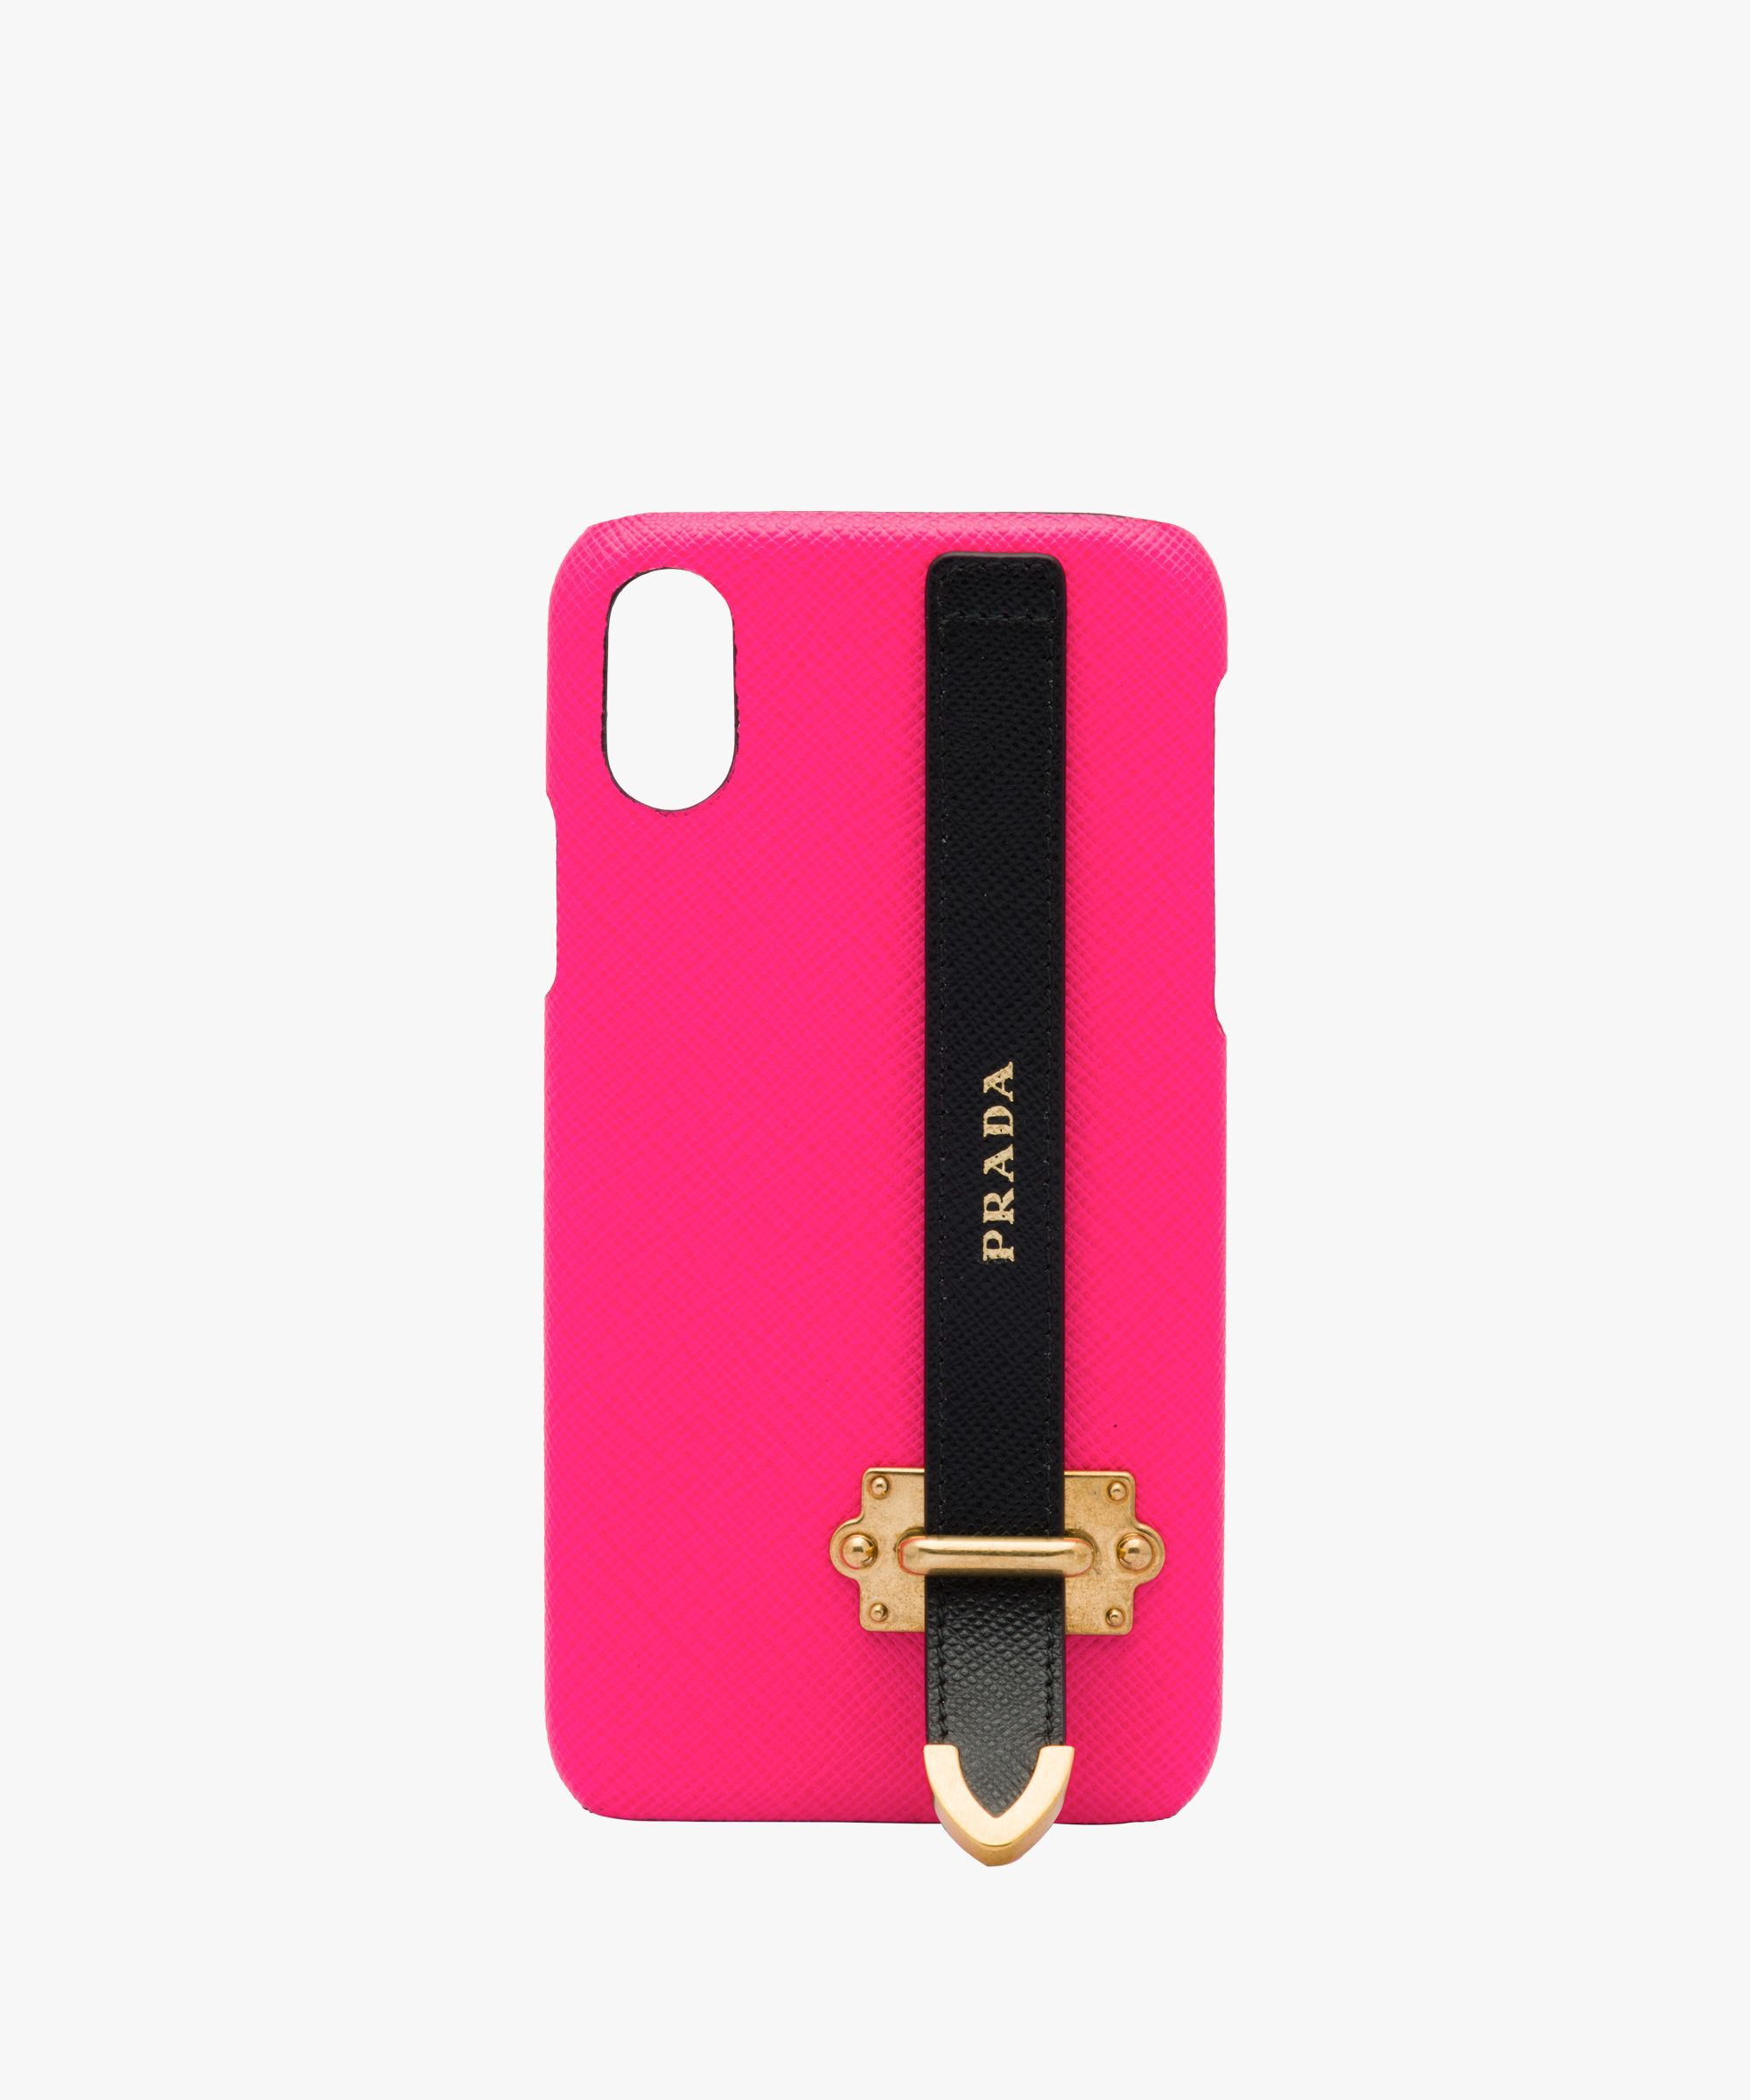 611e8a8035c8 Prada - Neon pink Saffiano leather iPhone cover | ELECTRONIC in 2019 ...